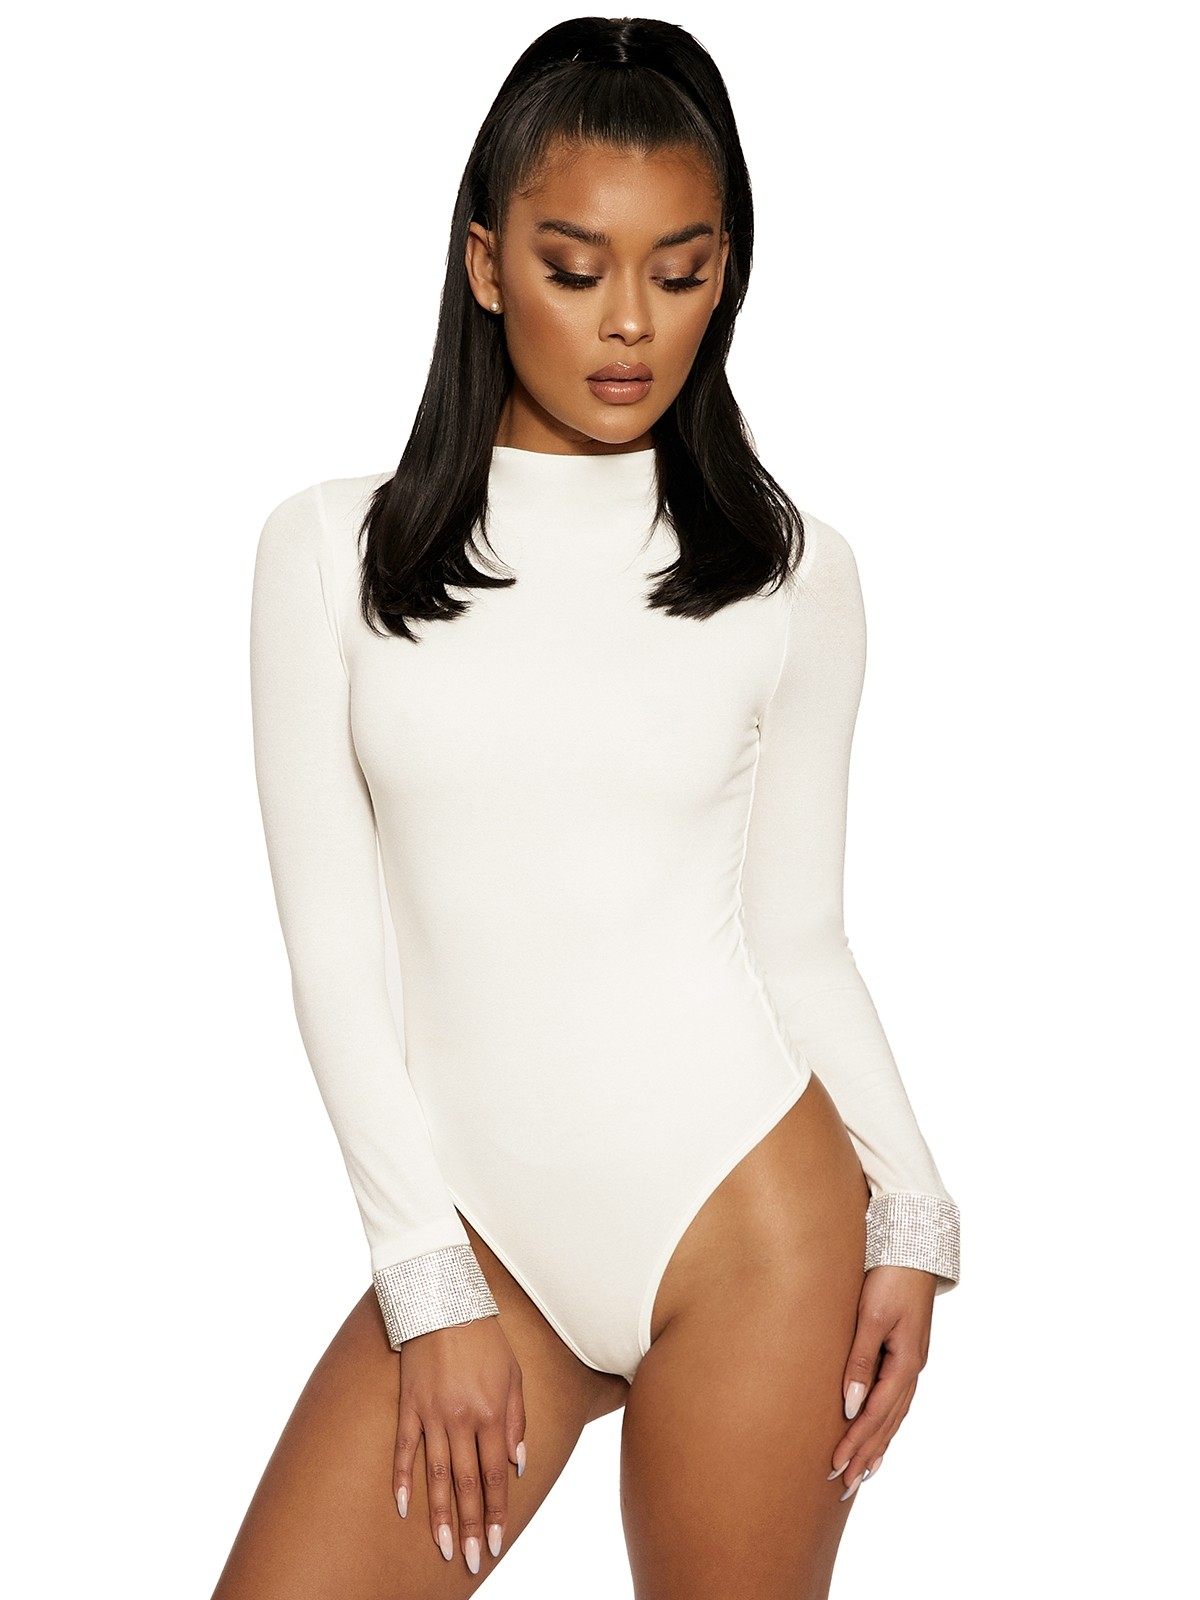 The NW Shine Thru Bodysuit by Naked Wardrobe, available on nakedwardrobe.com for $25 Kylie Jenner Top SIMILAR PRODUCT